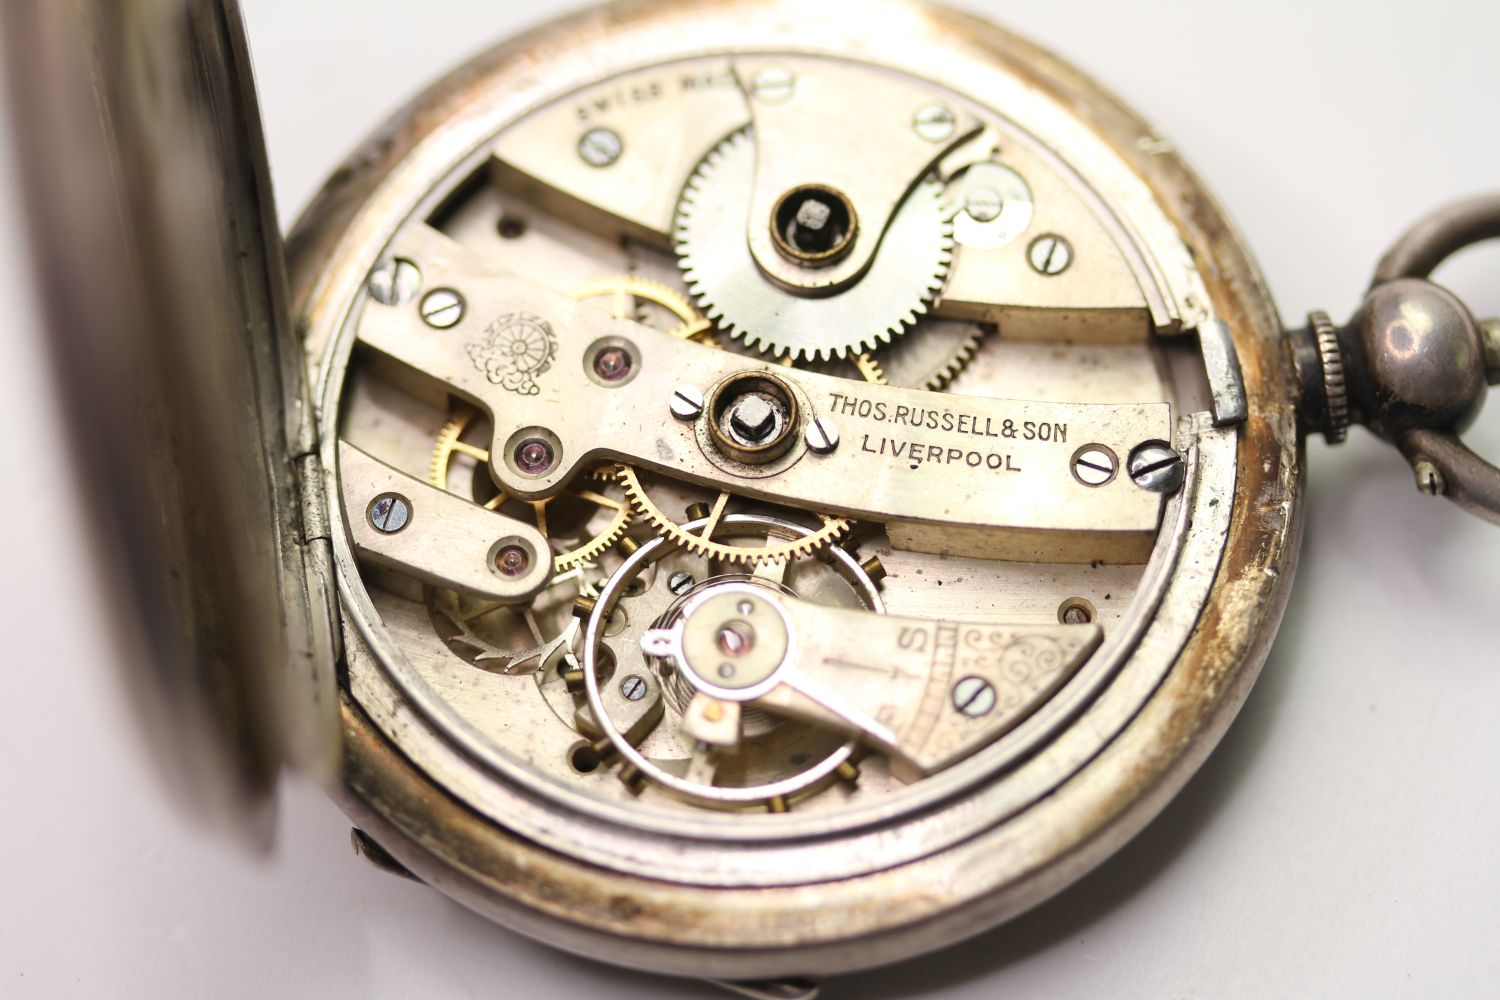 SILVER THO'S RUSSELL & SON POCKET WATCH & ALBERT CHAIN, circular white dial with arabic numbers, - Image 5 of 6